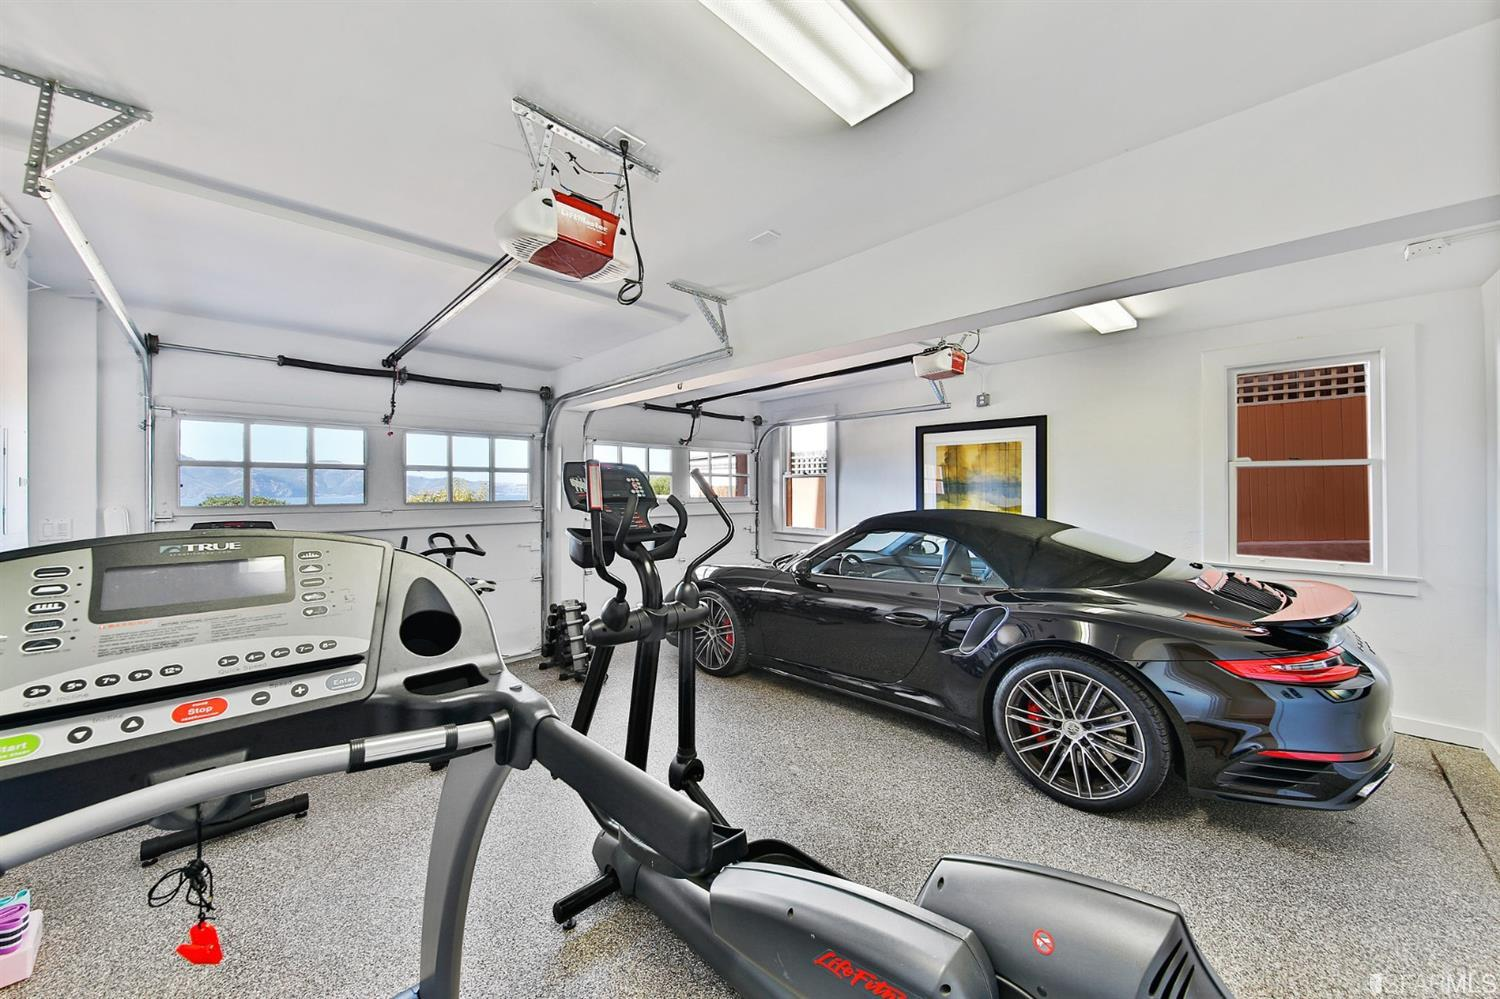 2-car garage.  1/2 of it has been turned into a home gym. It also has views.